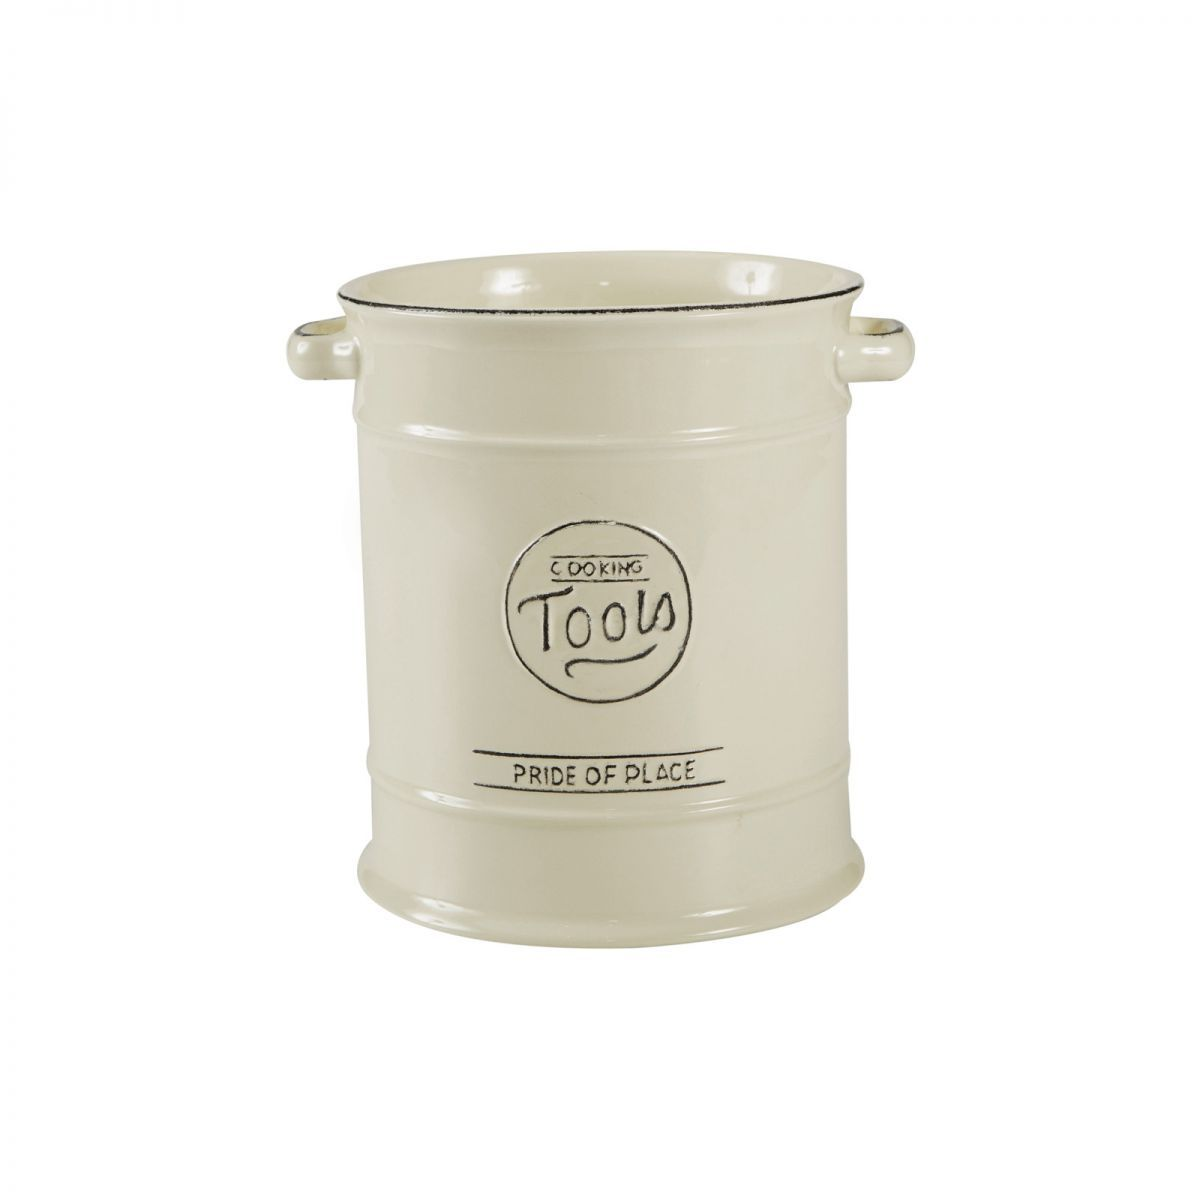 Cool Gray T/&G Woodware Pride of Place British Cooking Tools Jar